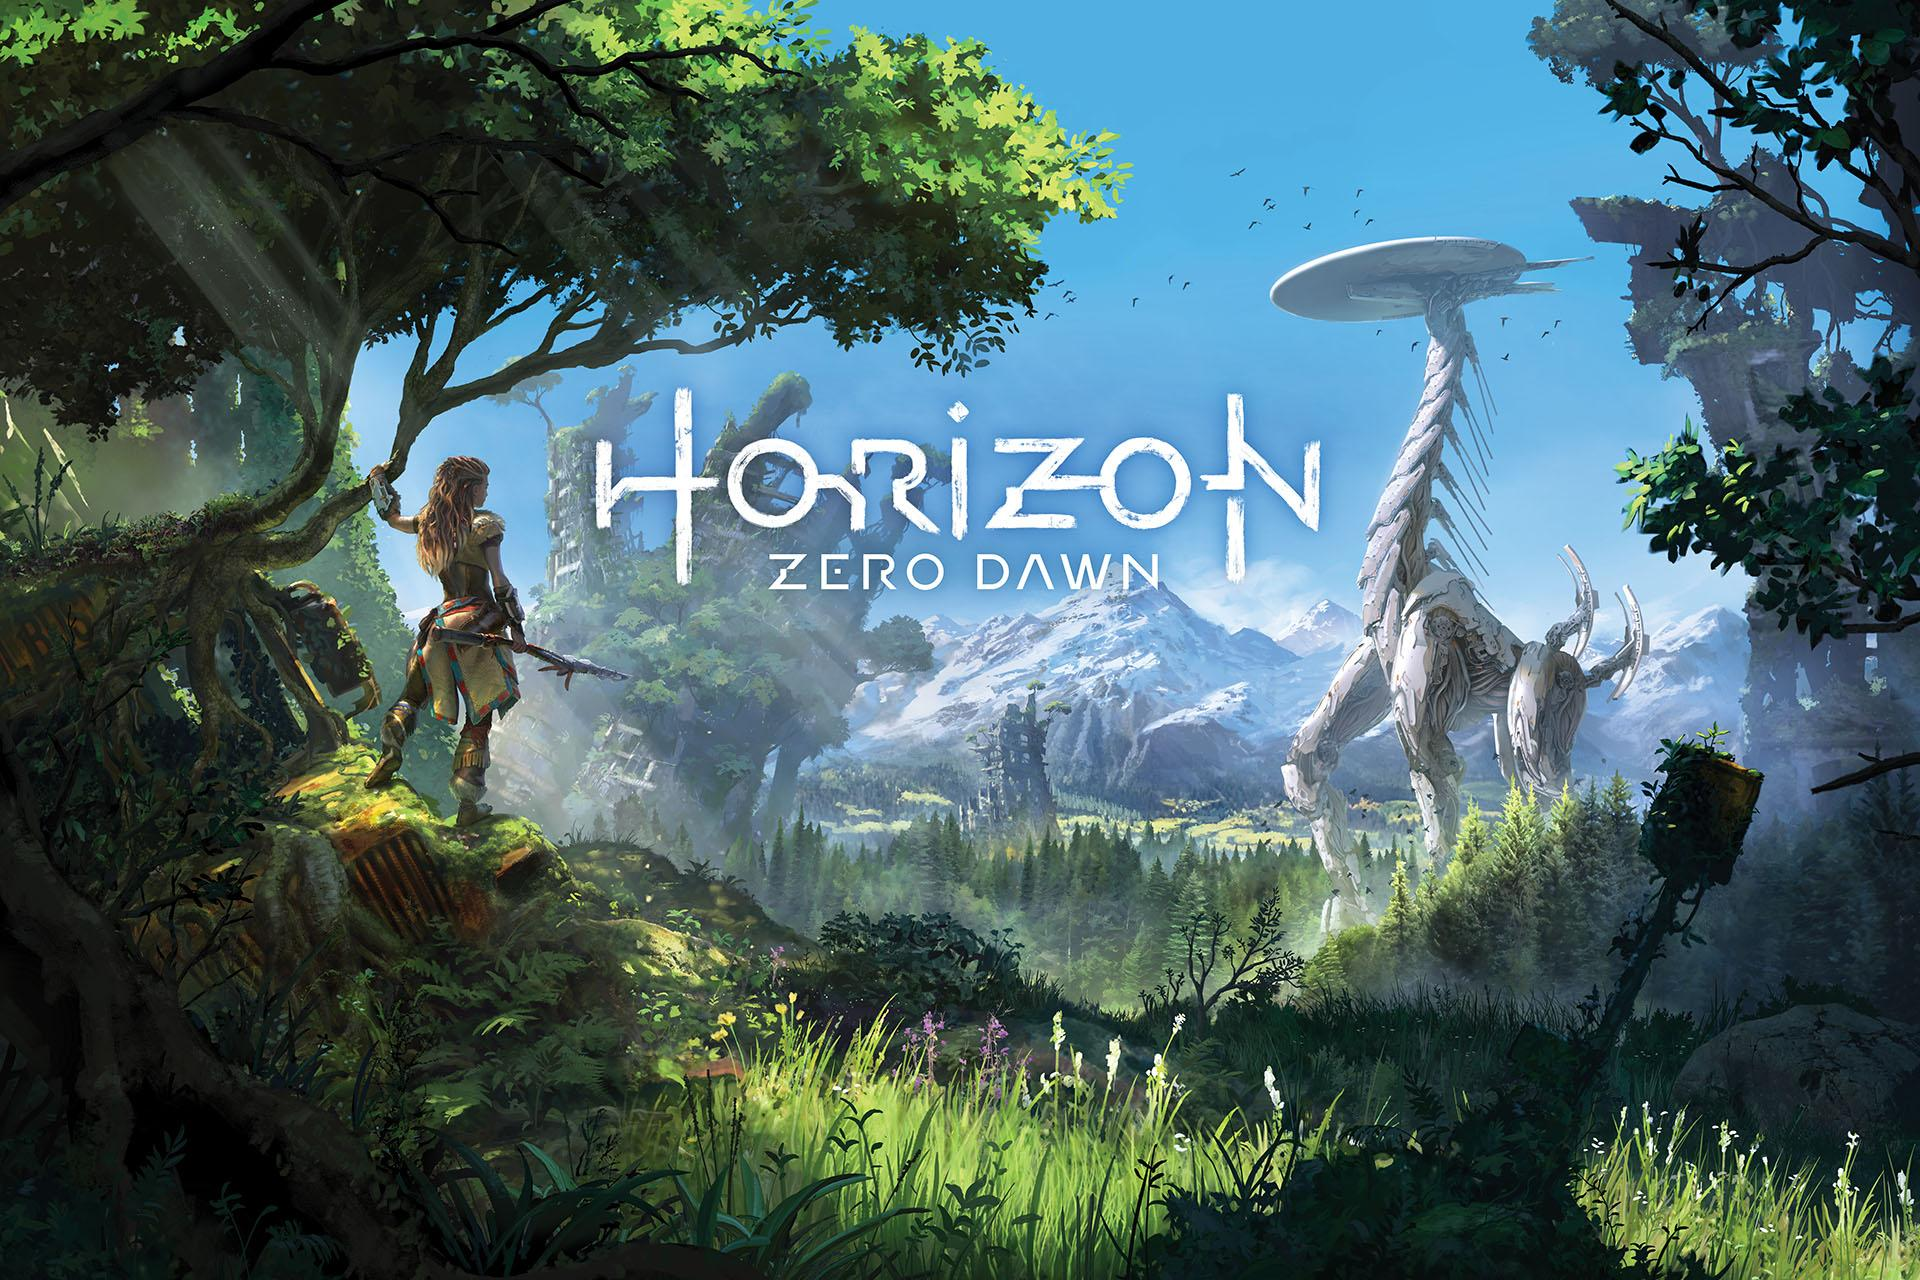 Horizon: Zero Dawn, by Guerrilla Games